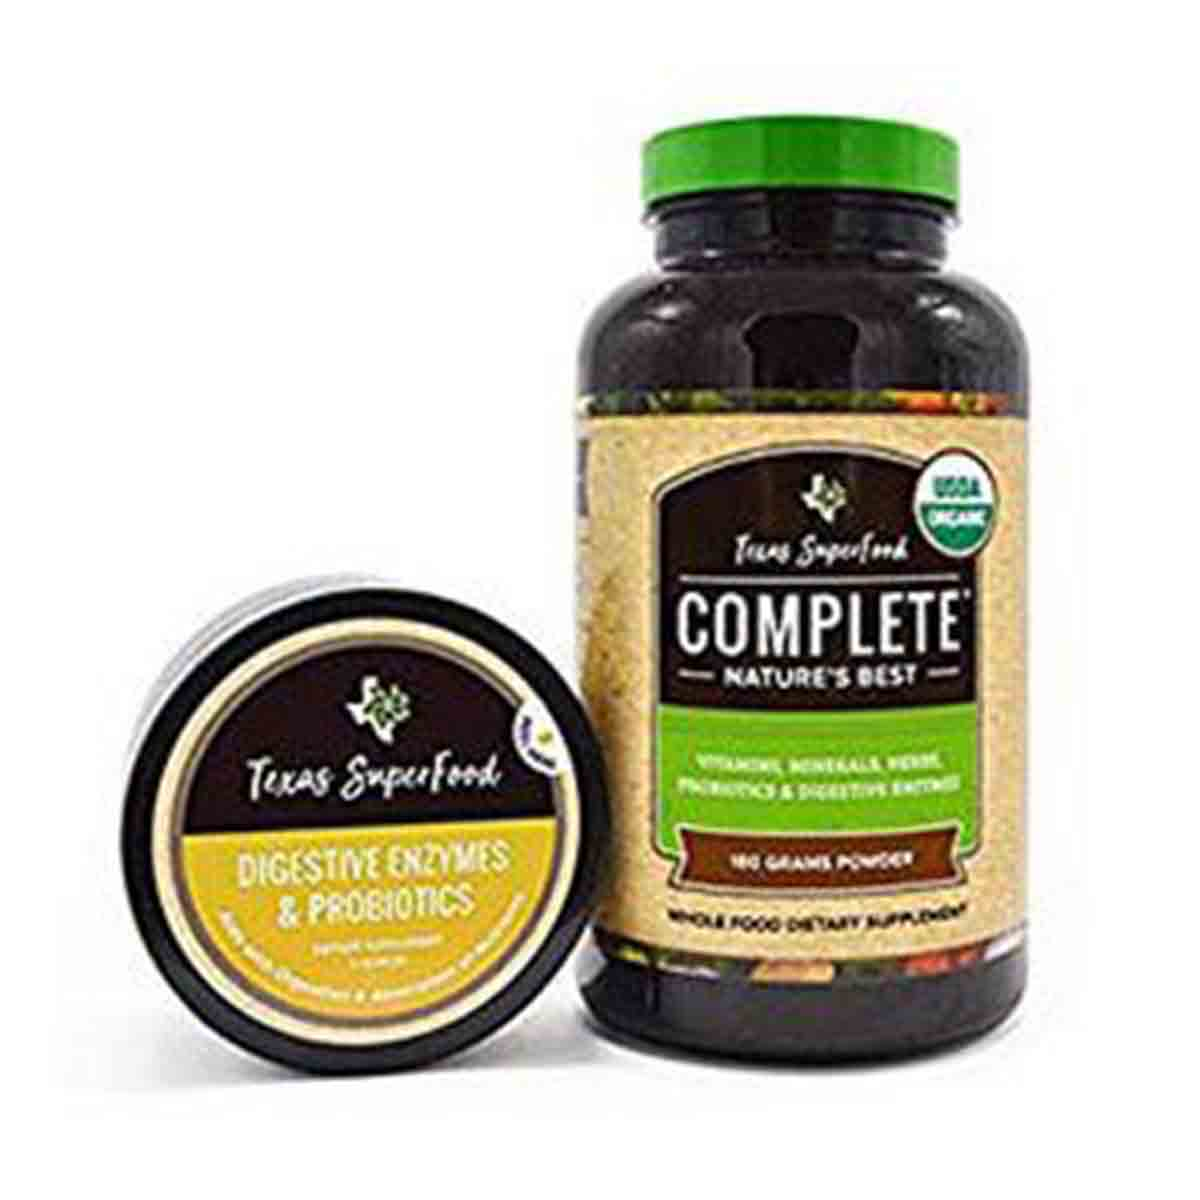 Texas Superfood Complete